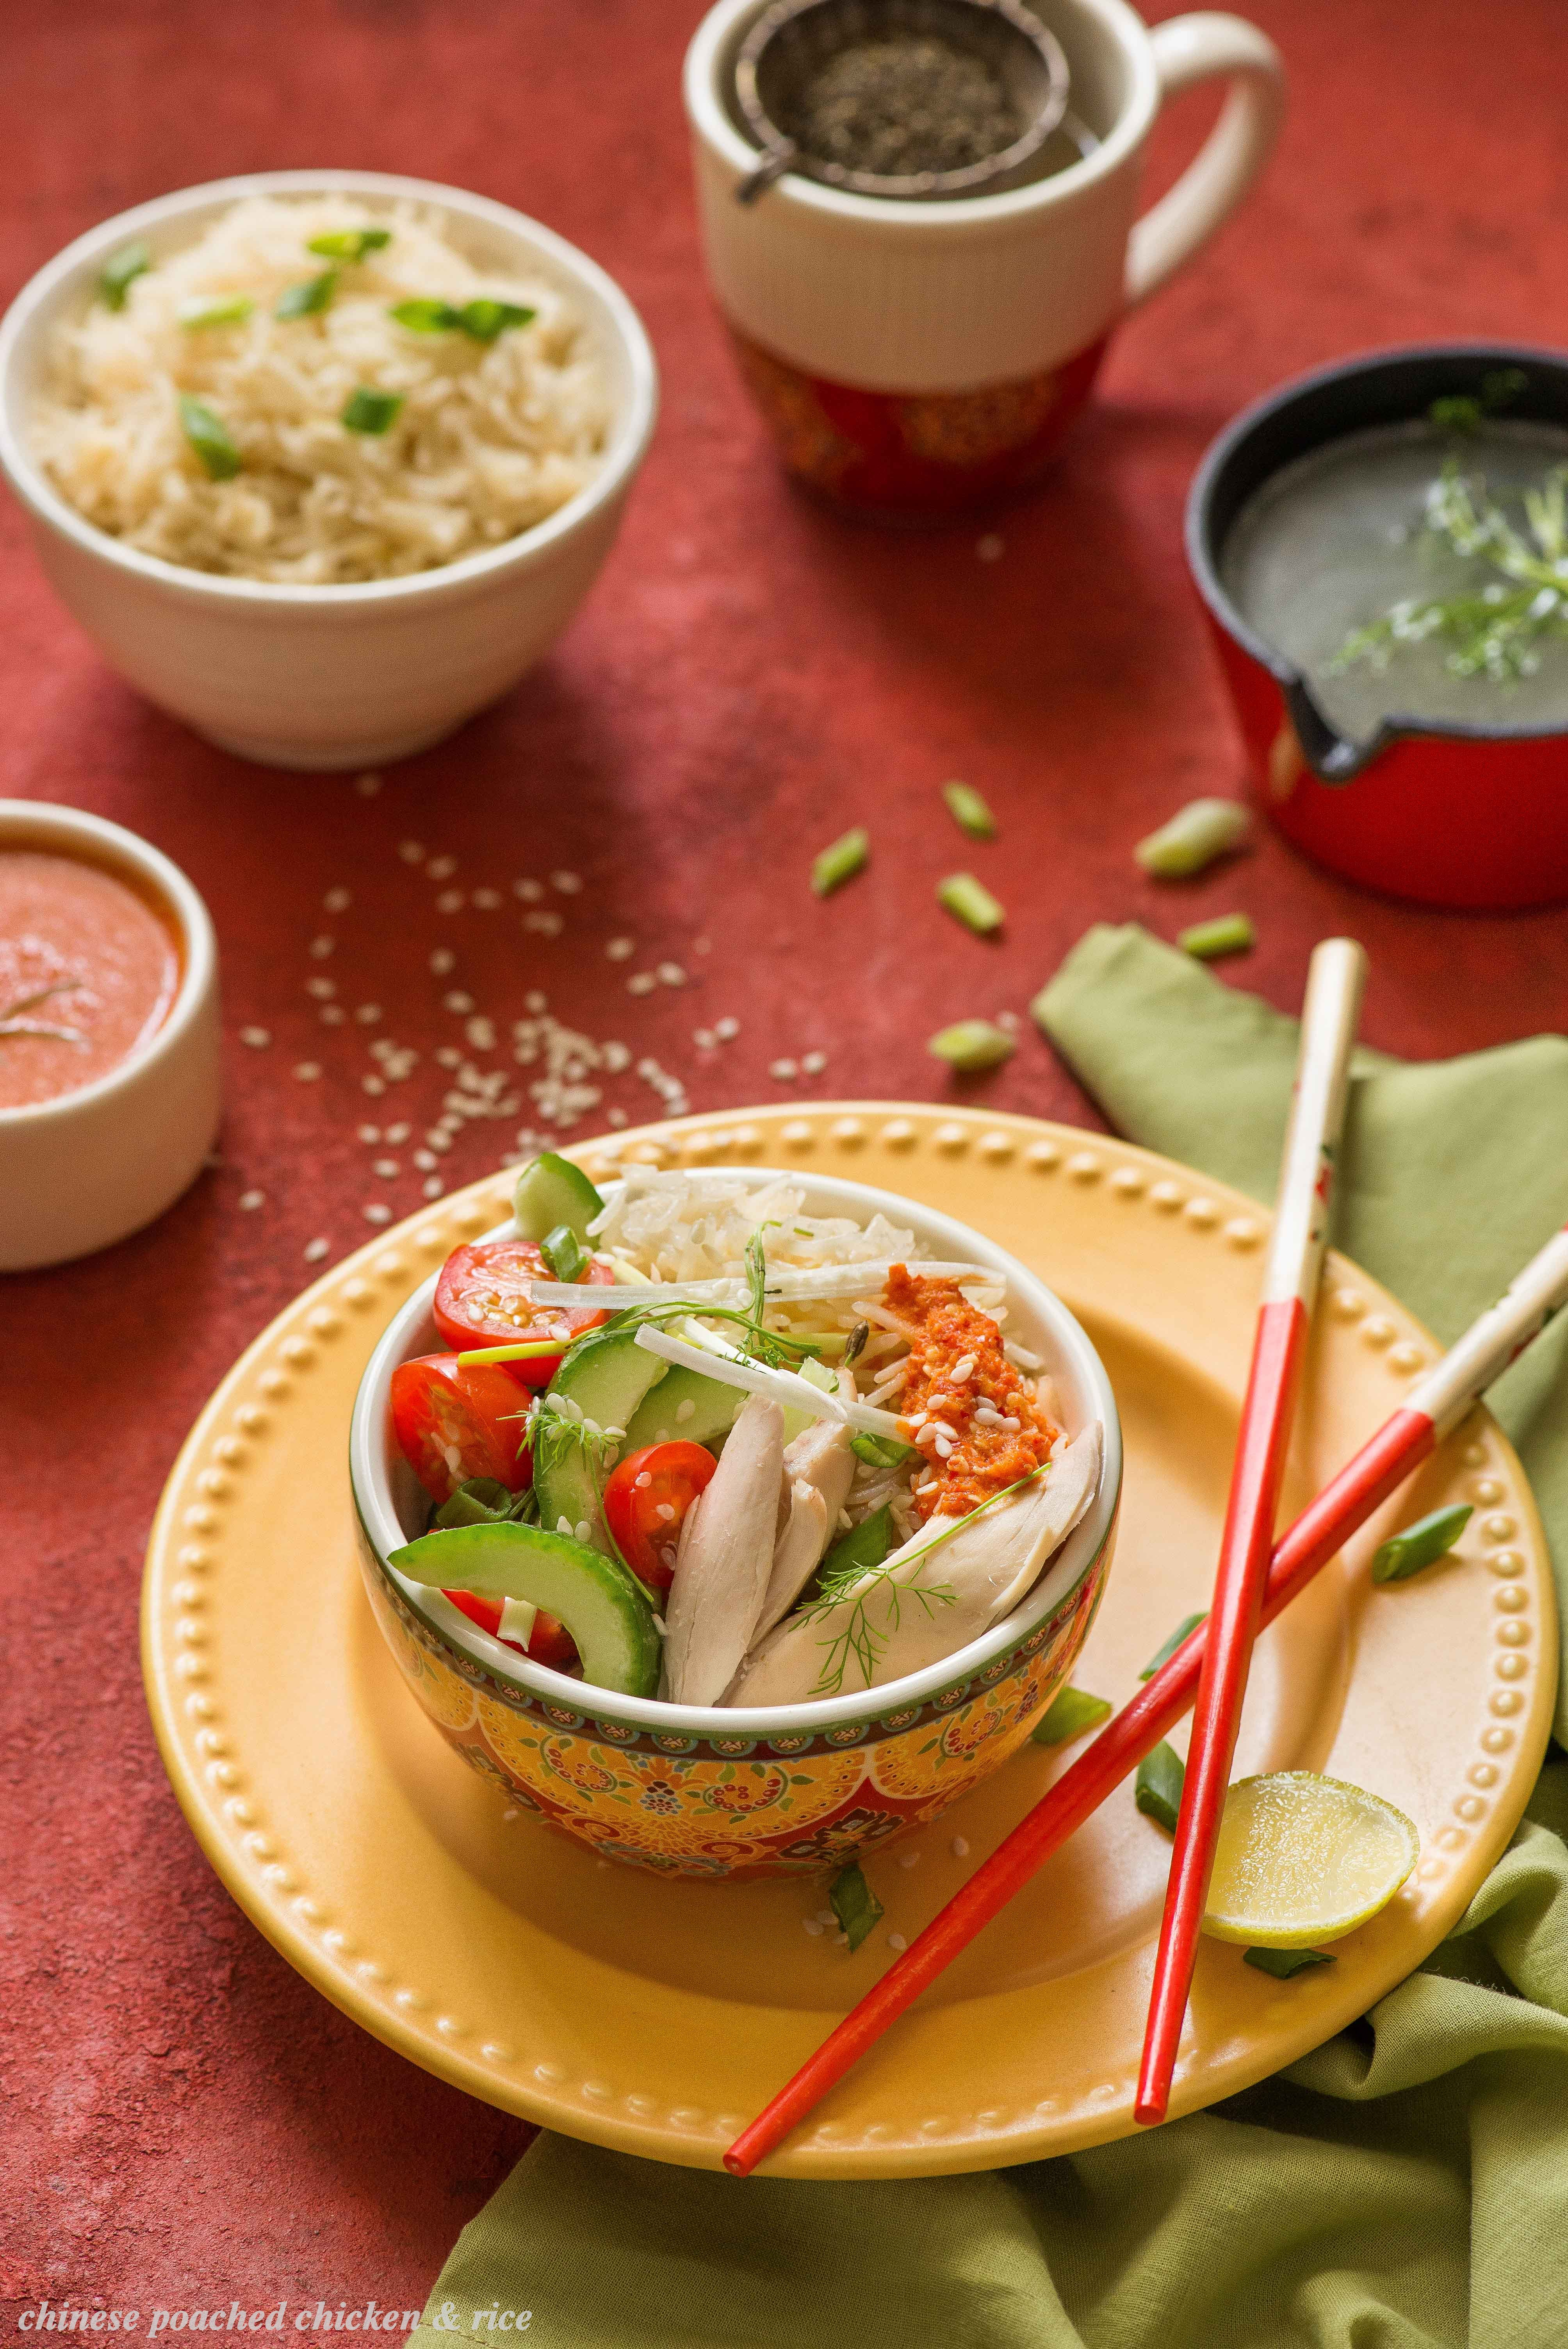 Chinese Poached Chicken Rice,How To Clean White Hats